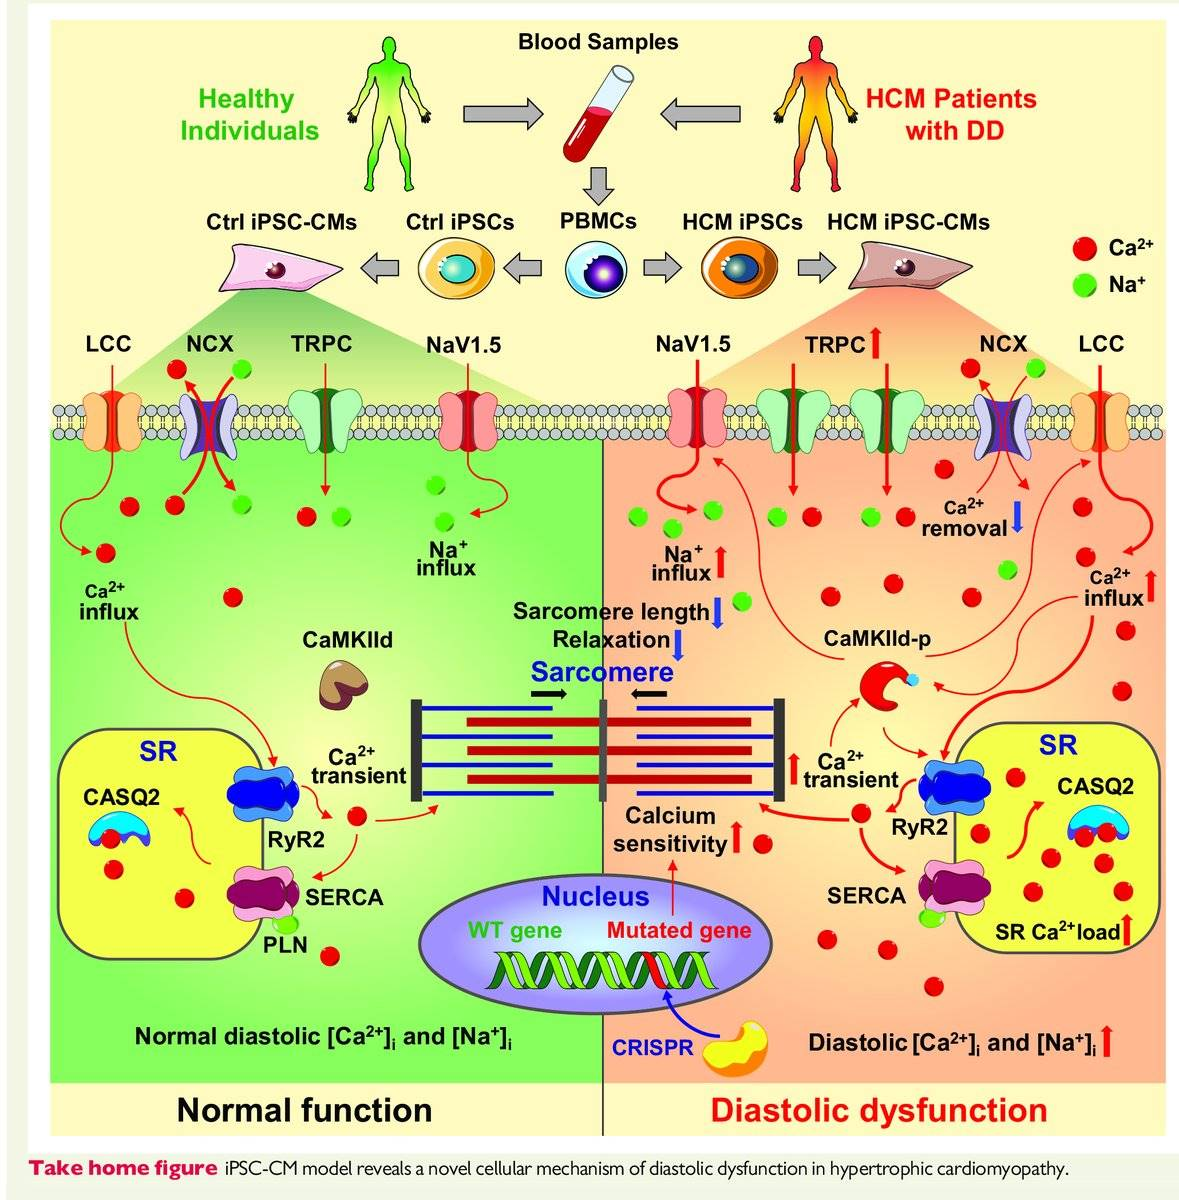 Signaling pathway in deadly cardiomyopathy identified!